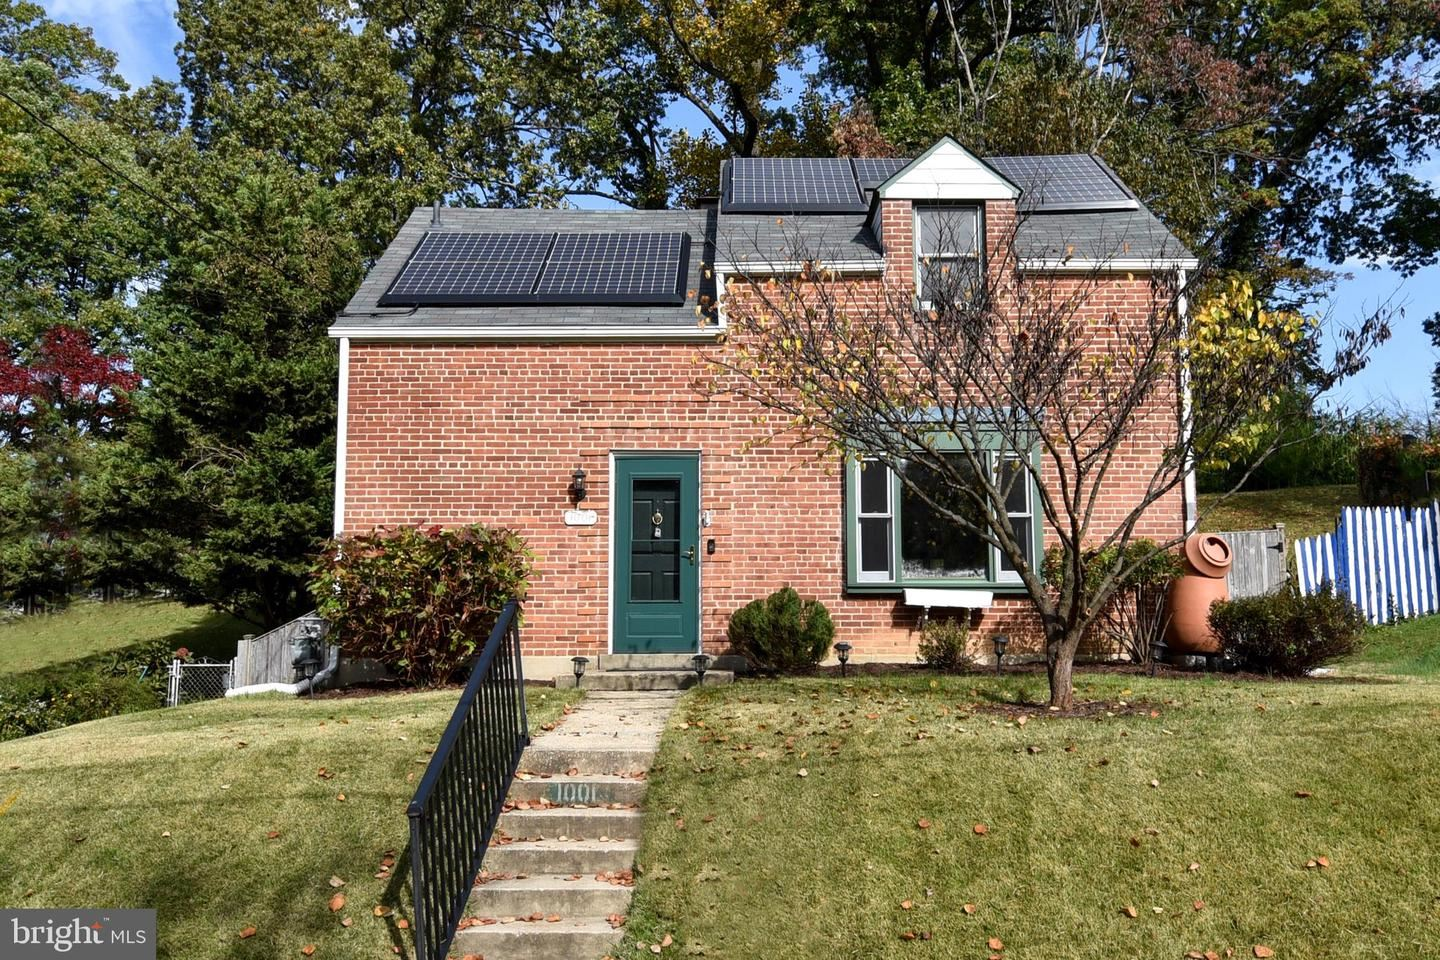 Photo for 1001 DENNIS AVE, SILVER SPRING, MD 20901 (MLS # MDMC729554)